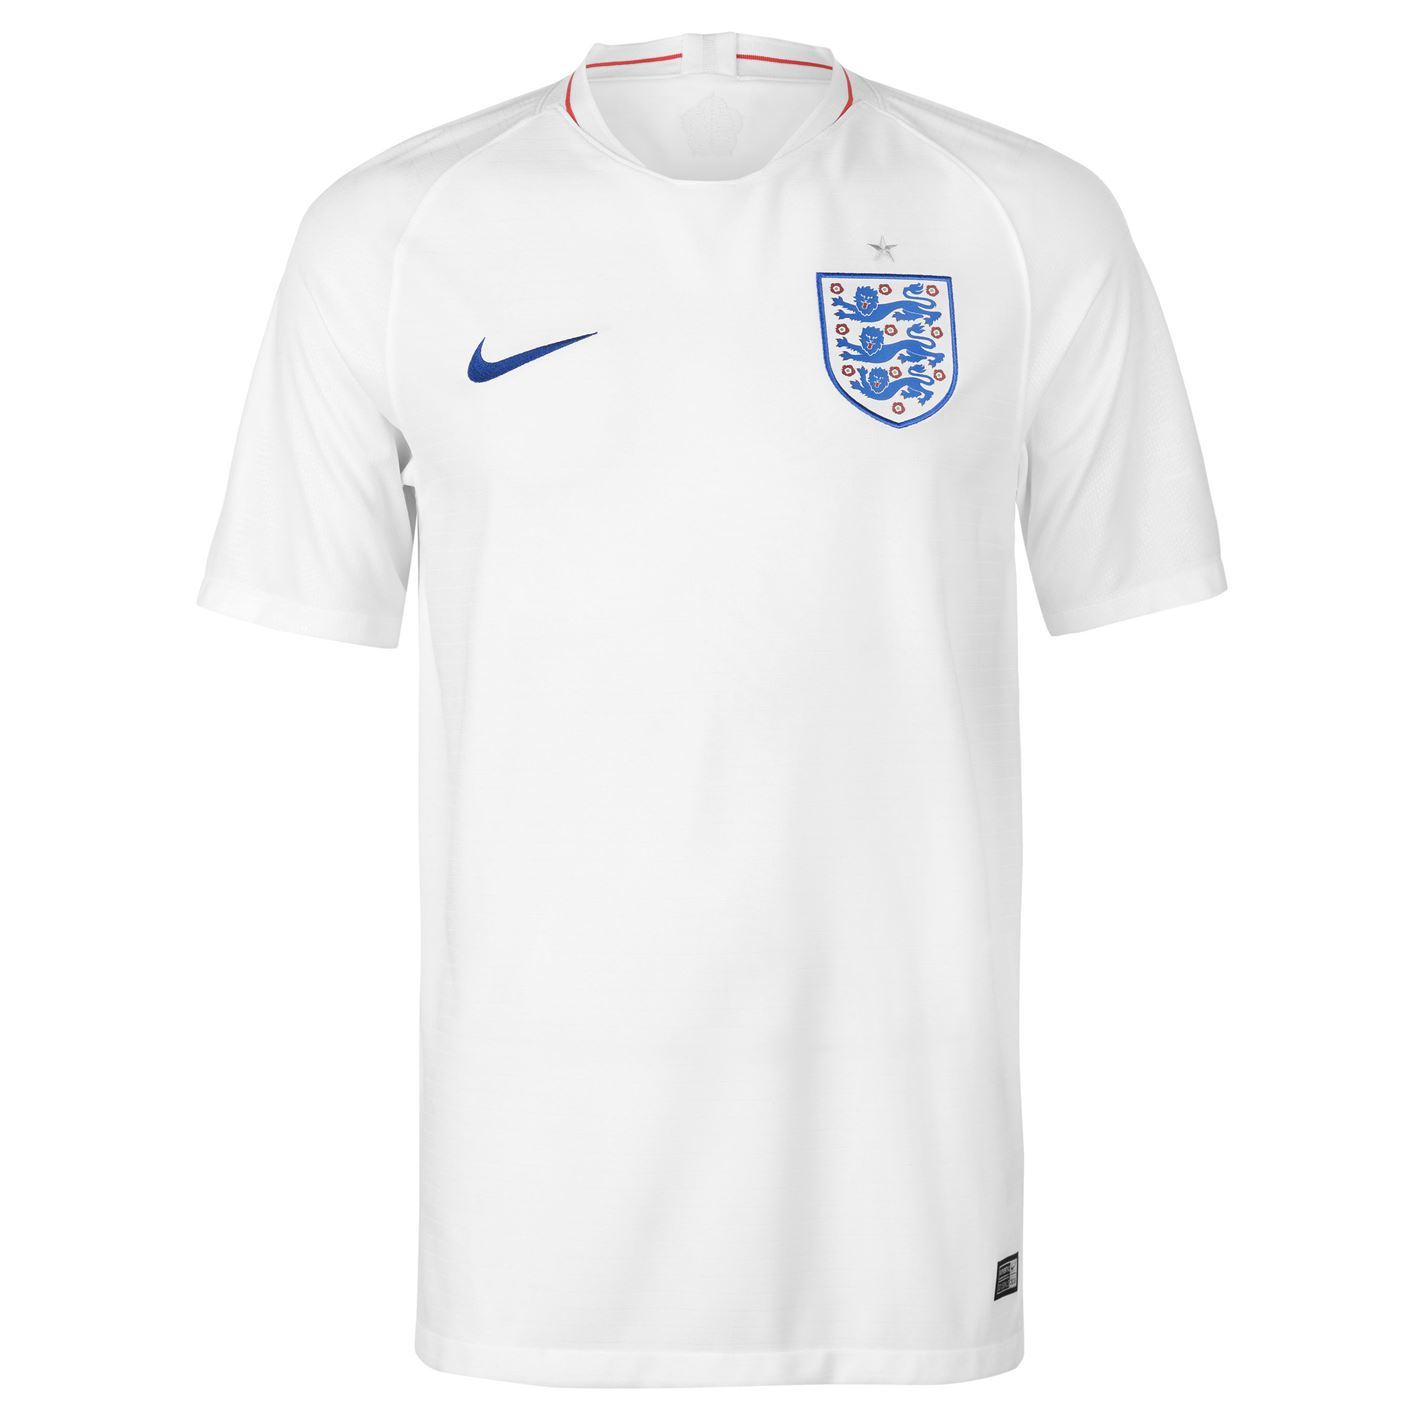 best service 7a978 4b3ba Details about Nike England Home Jersey 2018 Mens White/Royal Football  Soccer Top Shirt Strip